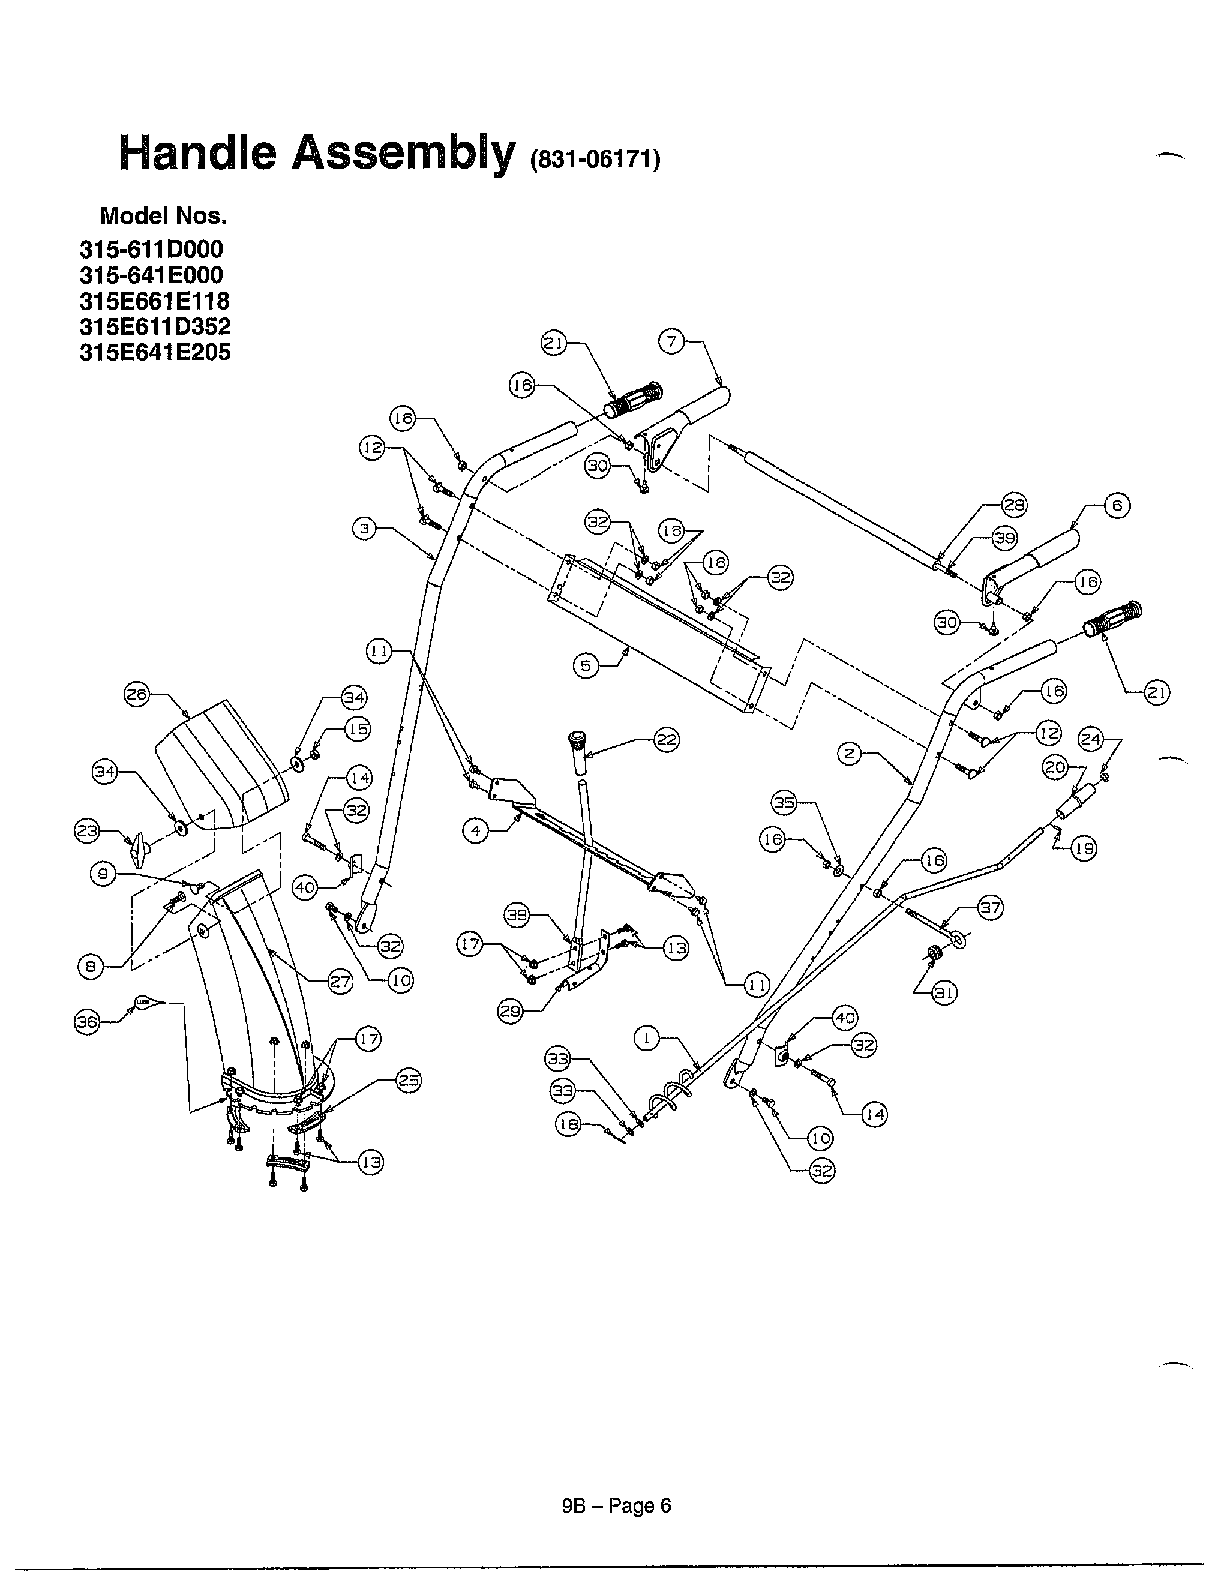 Mtd  Snow Thrower  Handle assembly page 3